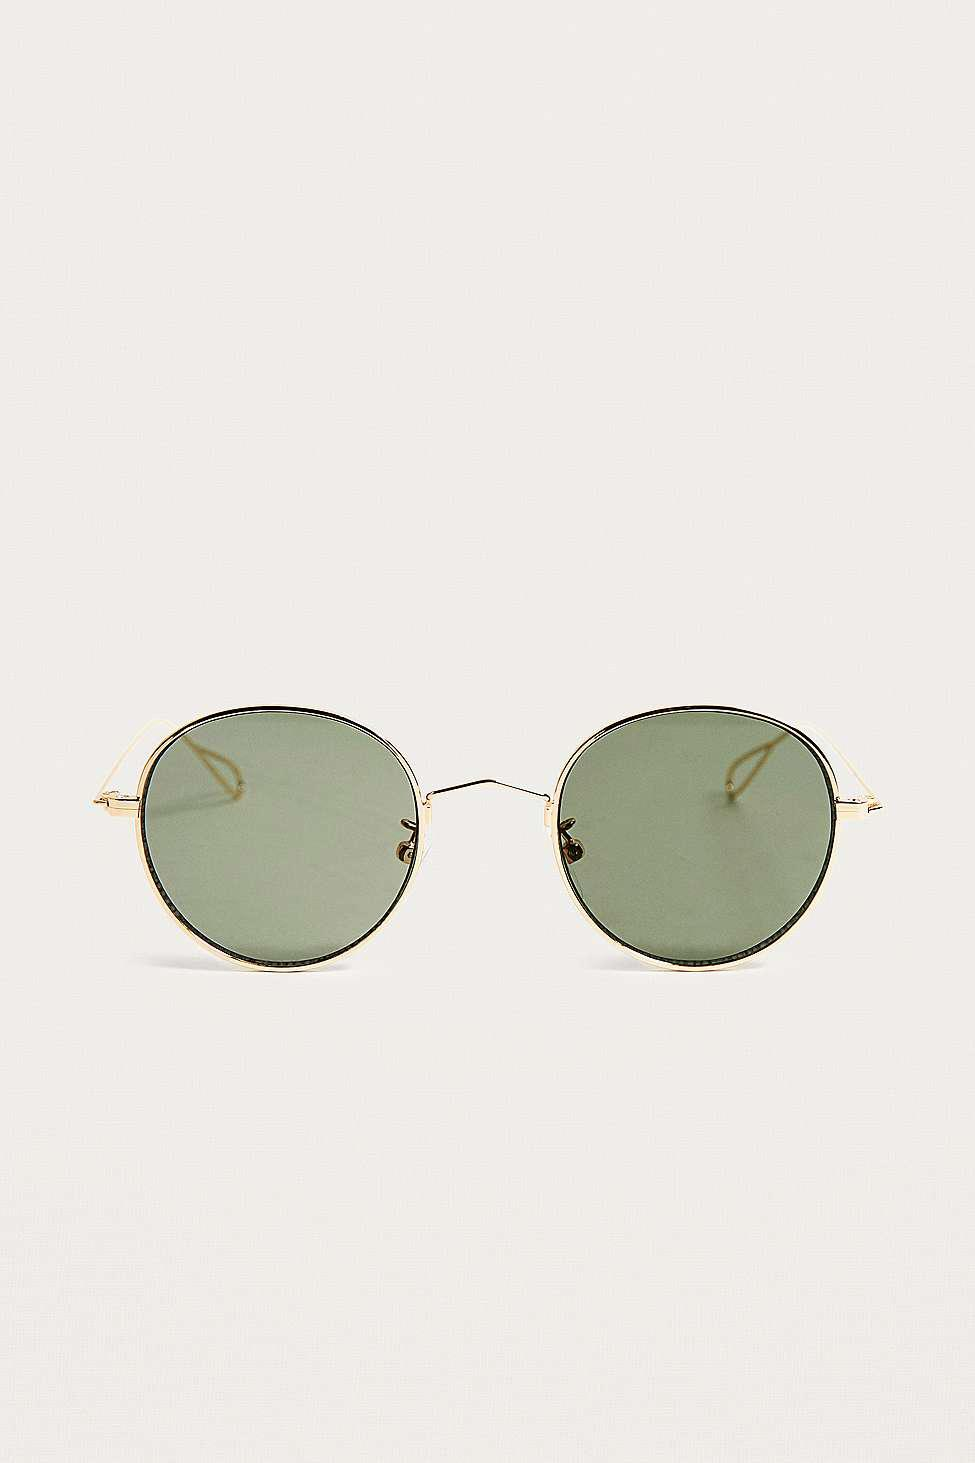 Urban Outfitters Uo 'smith' Gold Sunglasses - Mens All in Metallic for Men